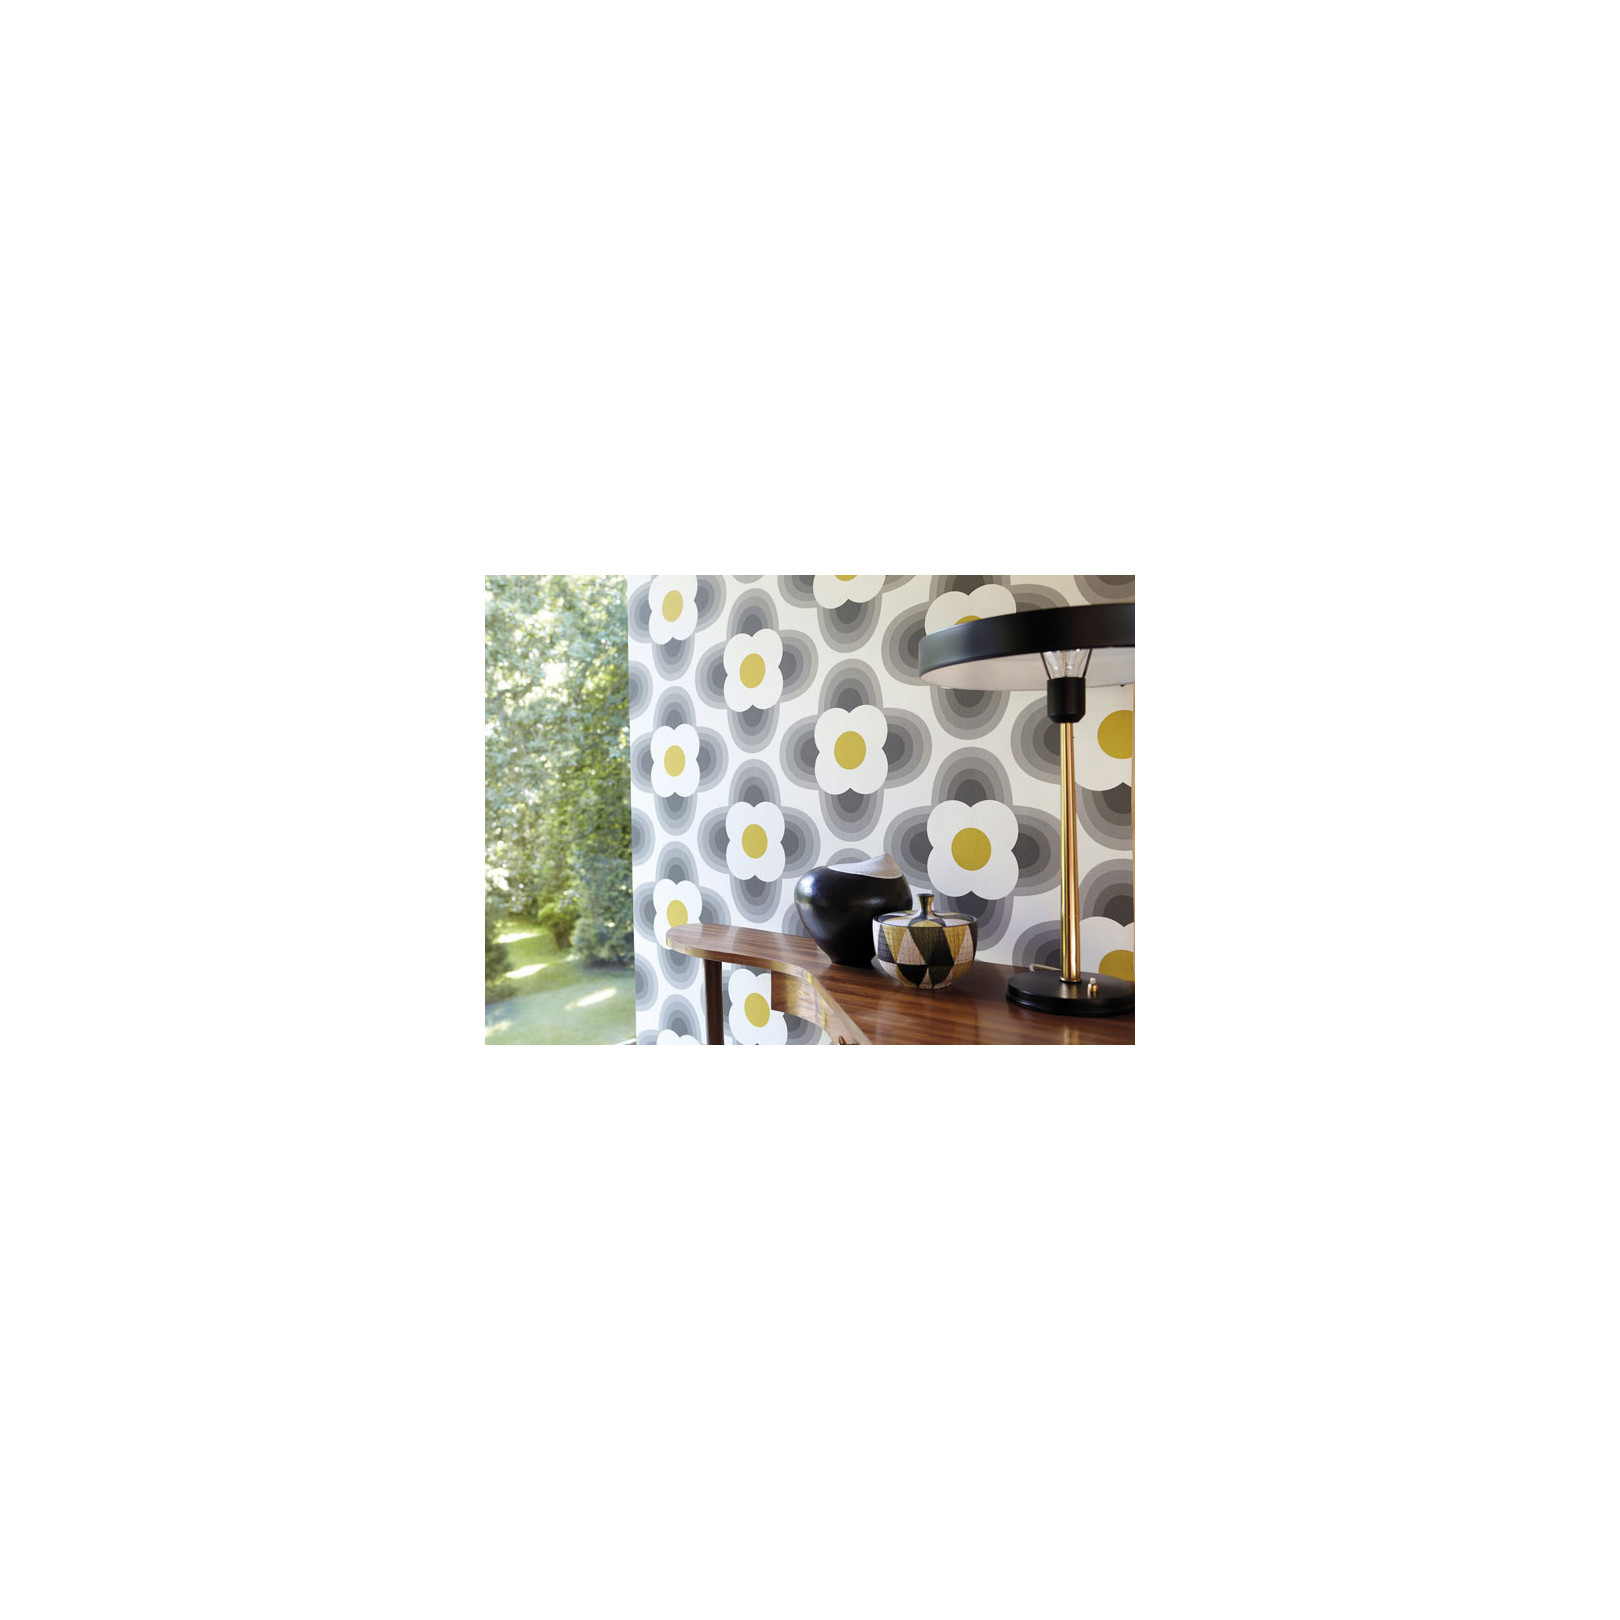 papier peint vintage vert d 39 eau striped petal de orla kiely. Black Bedroom Furniture Sets. Home Design Ideas